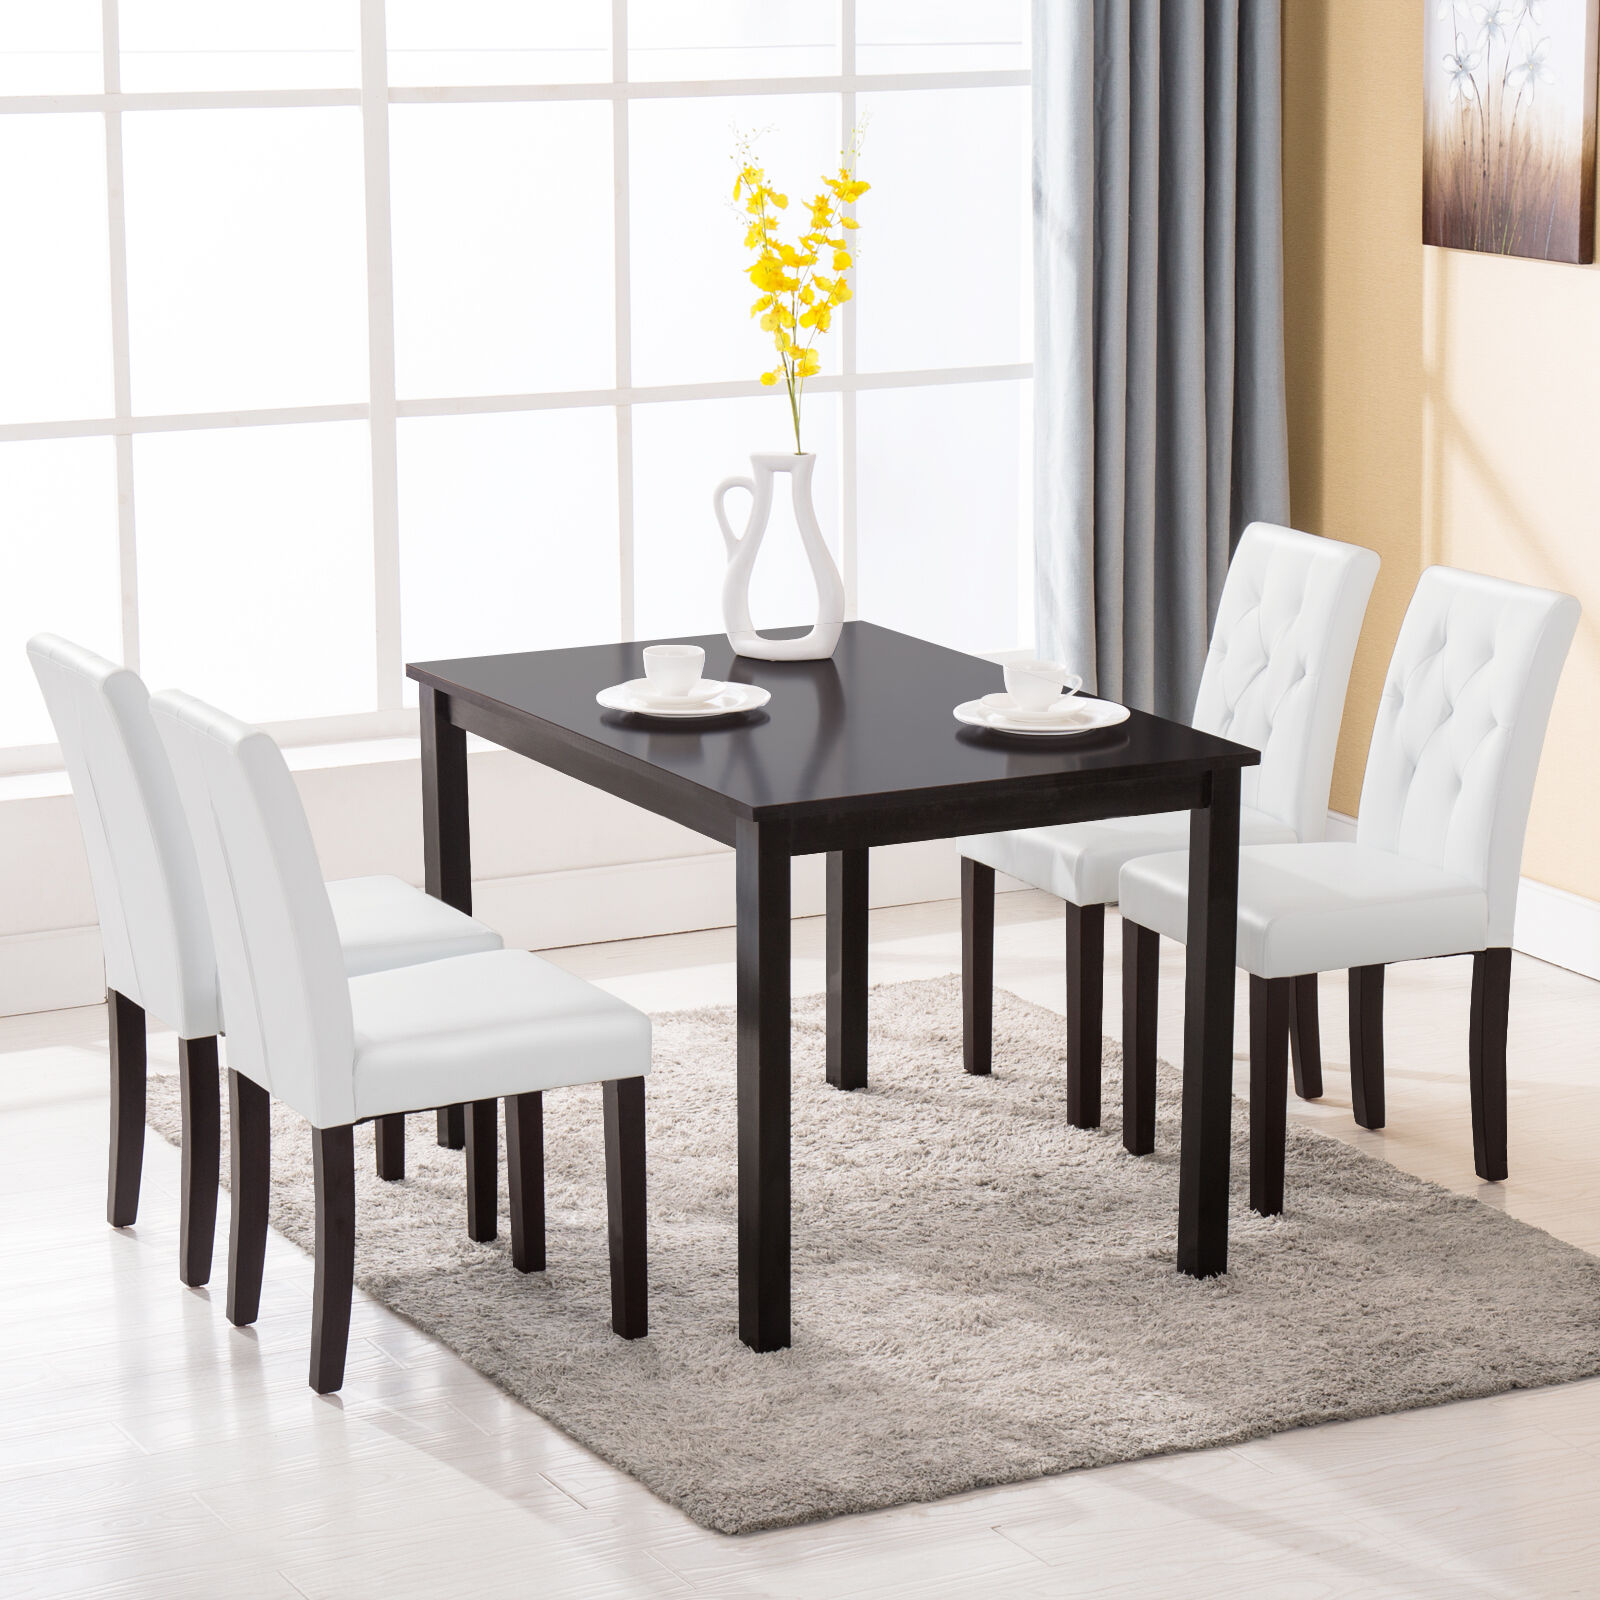 Kitchen Dinette Set: 5 Piece Dining Table Set 4 Chairs Room Kitchen Dinette